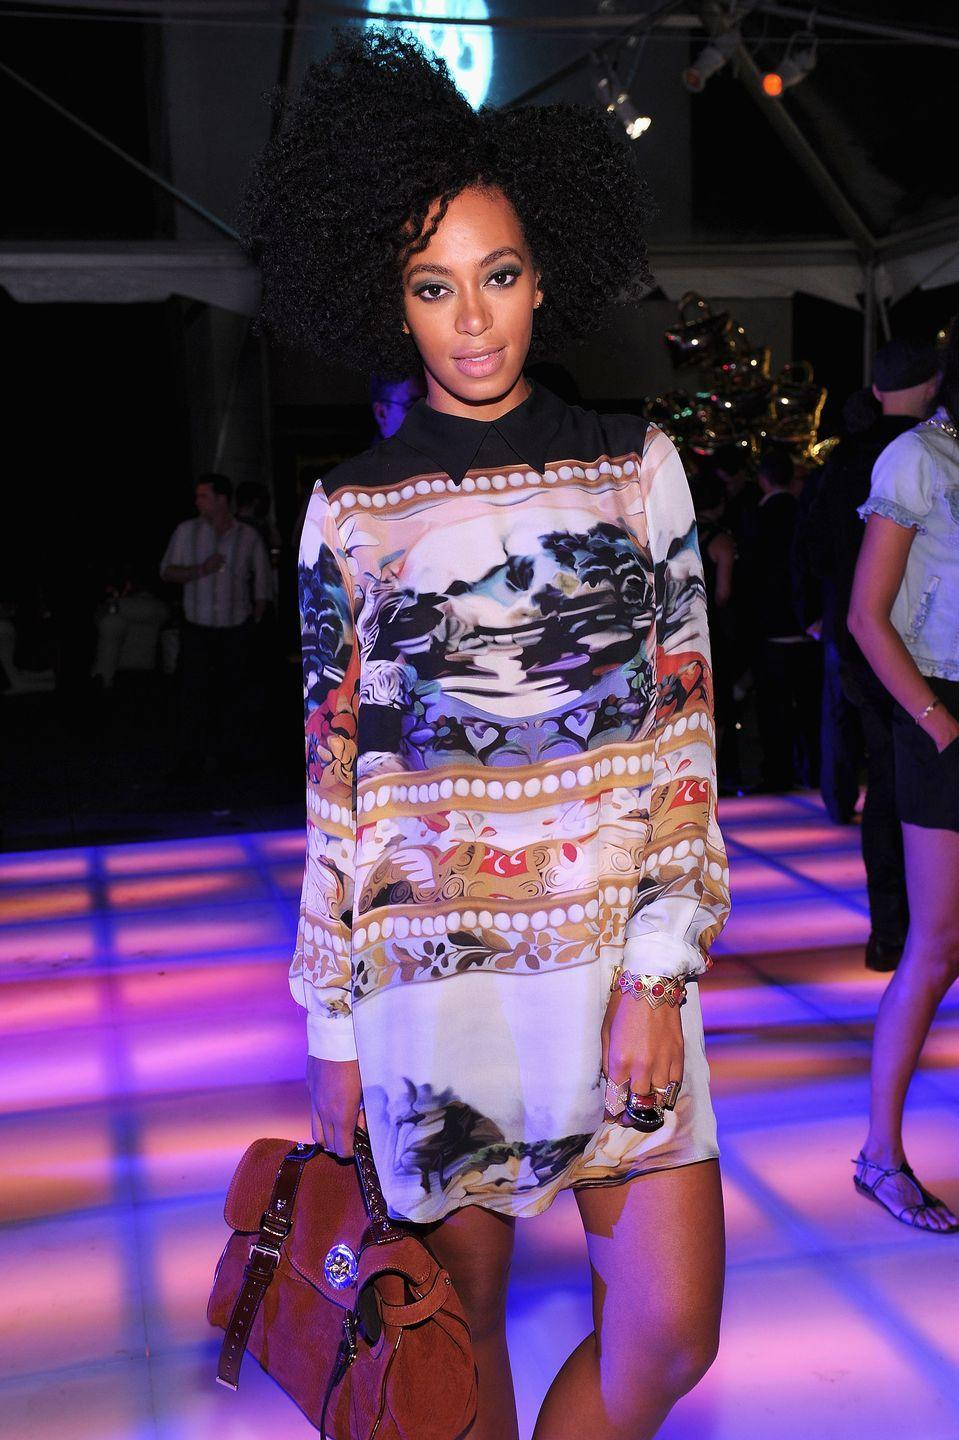 <p>Named for Alexa Chung, Mulberry's Alexa bag, which launched in 2010, was just as stylish as the model who inspired it. Its signature double-buckle feature on the front and versatile straps made it *the* bag to wear—even Solange got in on the craze.</p>